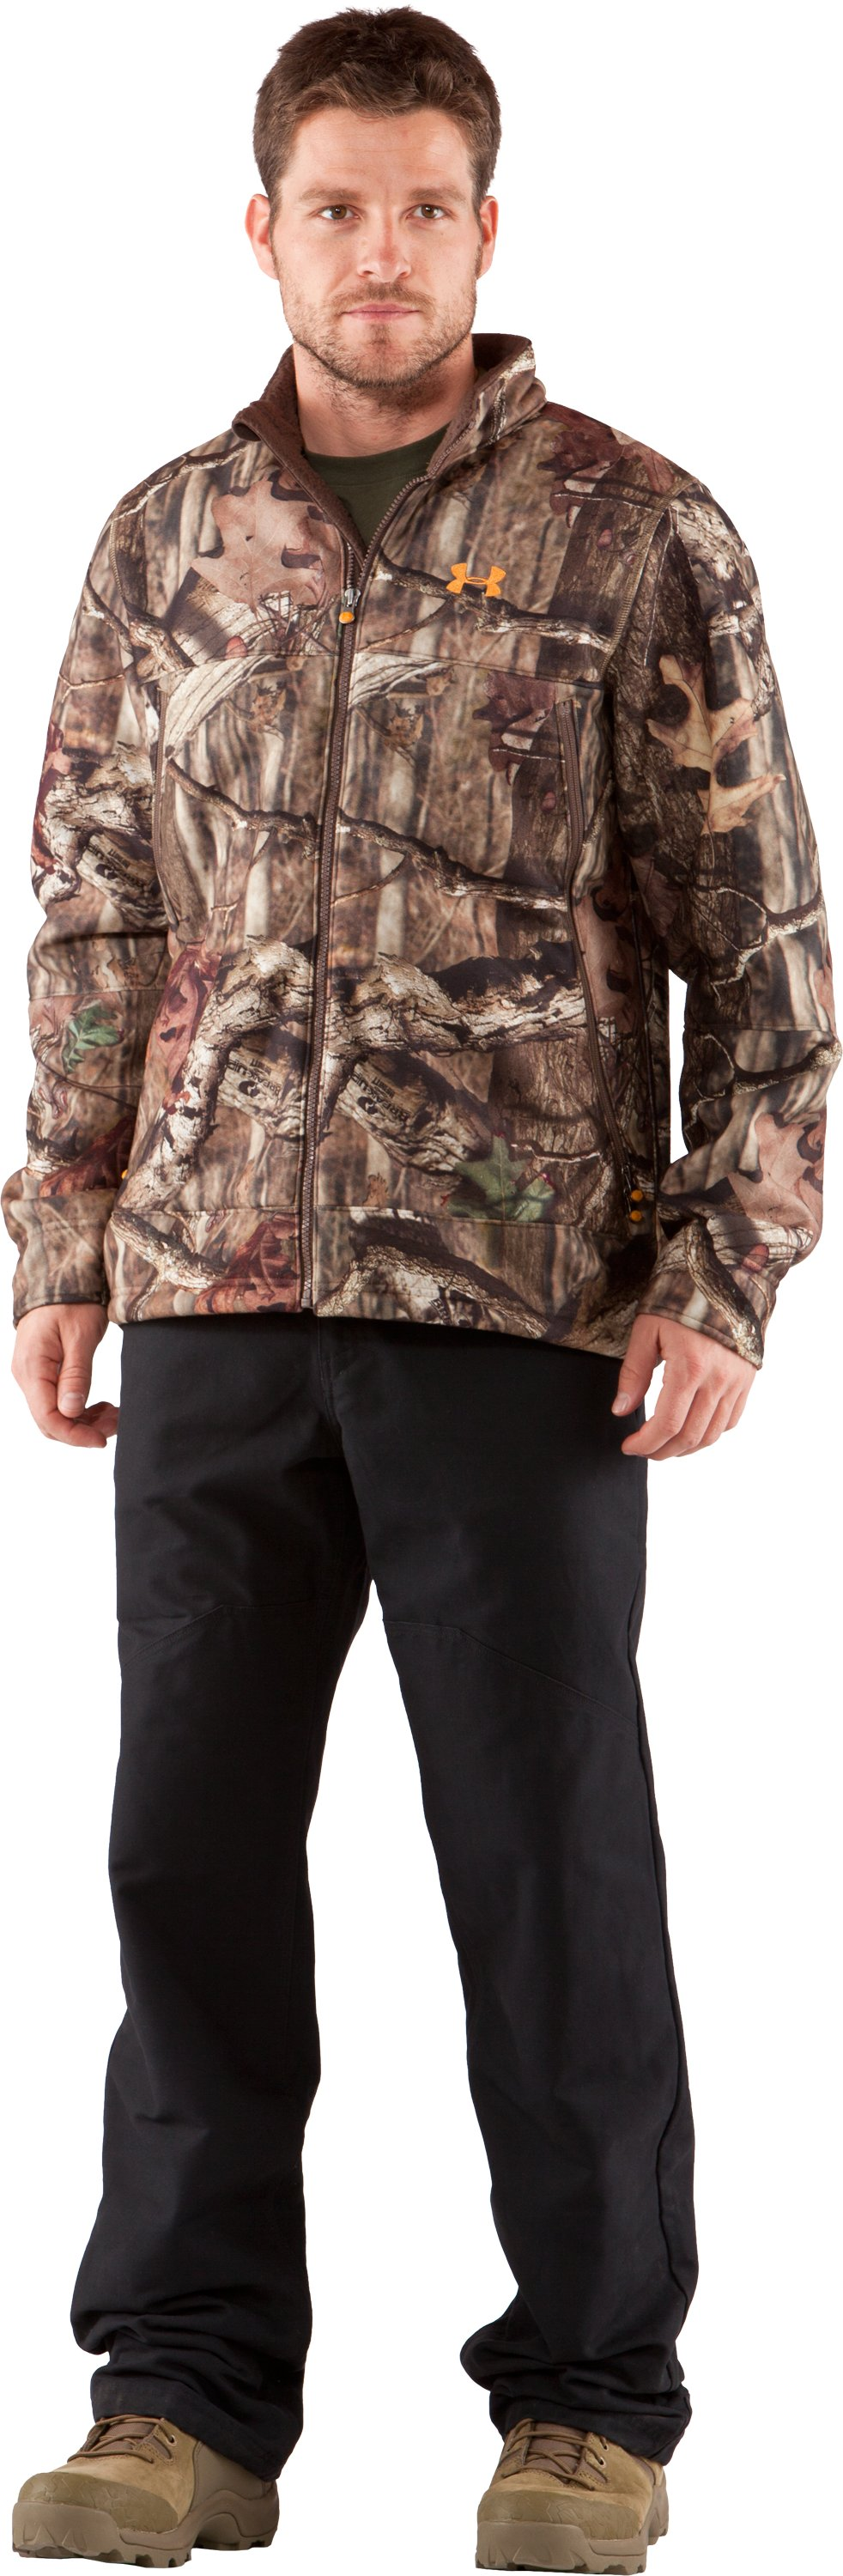 Men's UA Ayton II Fleece Camo Hunting Jacket, Mossy Oak Break-Up Infinity